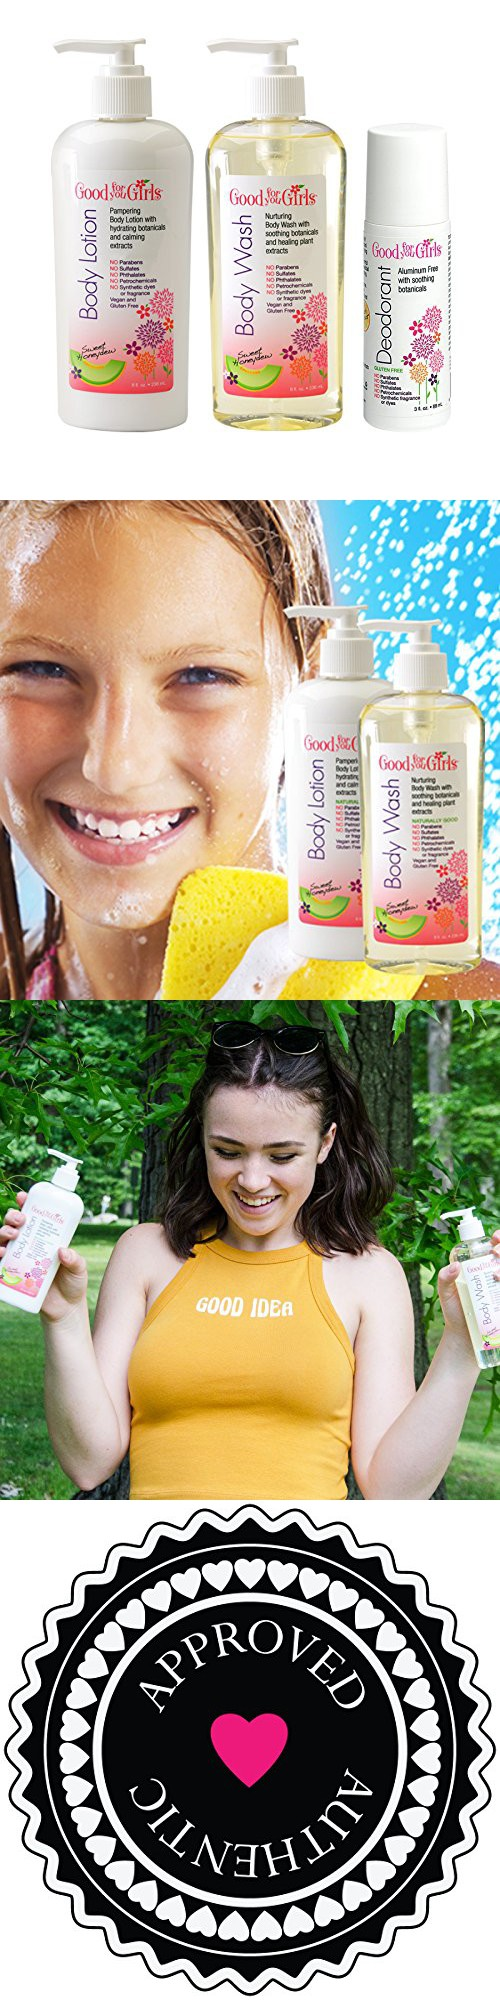 Good For You Girls Body Care Trio Wash Lotion Soap Ampamp Glory Irresistibubble Gift Set Deodorant